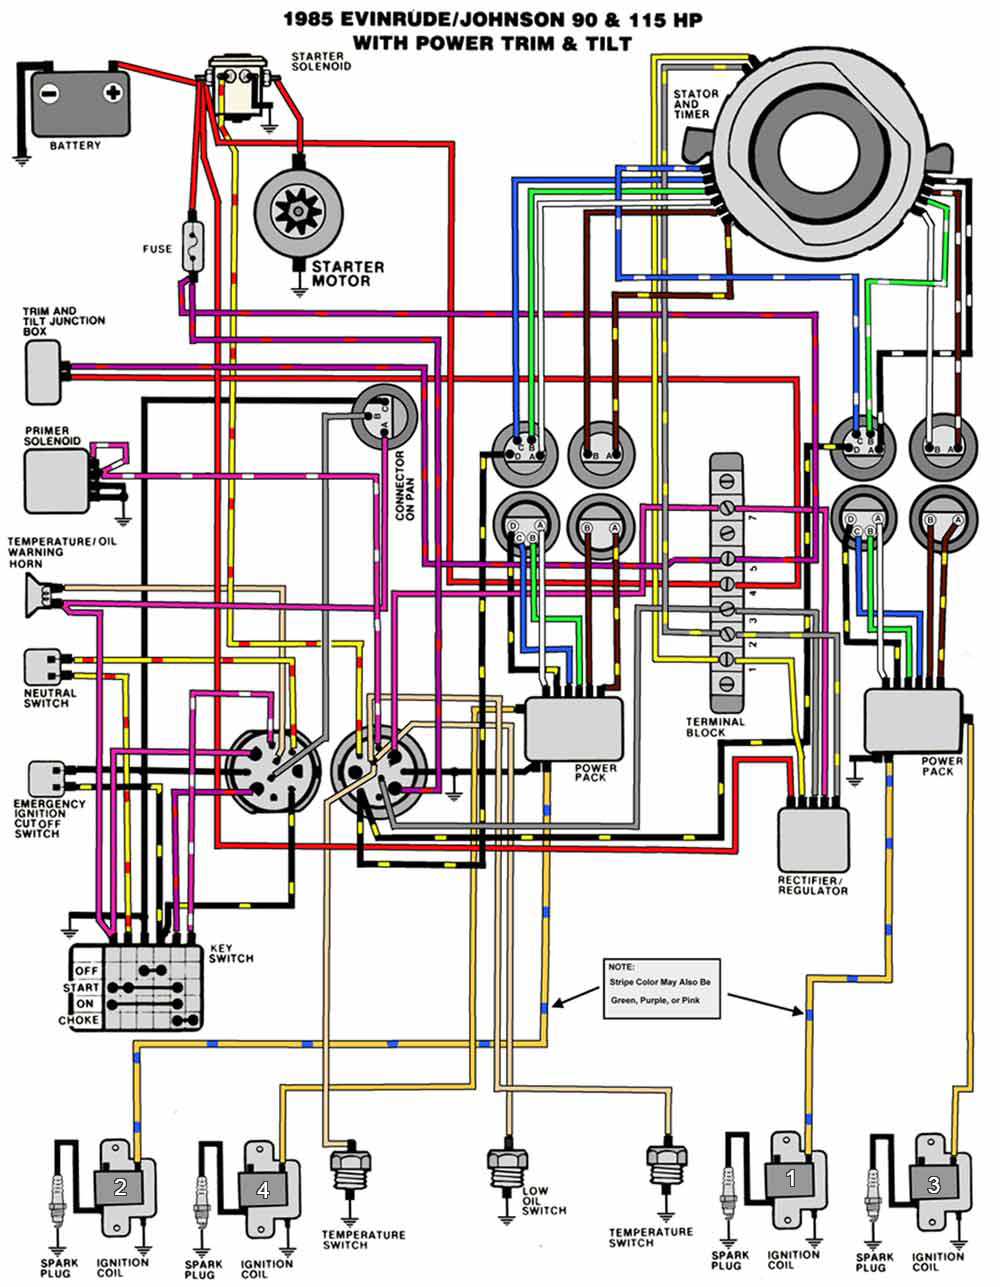 Wiring Diagram For 1991 Evinrude 150 Starting Know About 91 Nissan Sentra Free Picture Johnson Harness Schematic Simple Rh David Huggett Co Uk